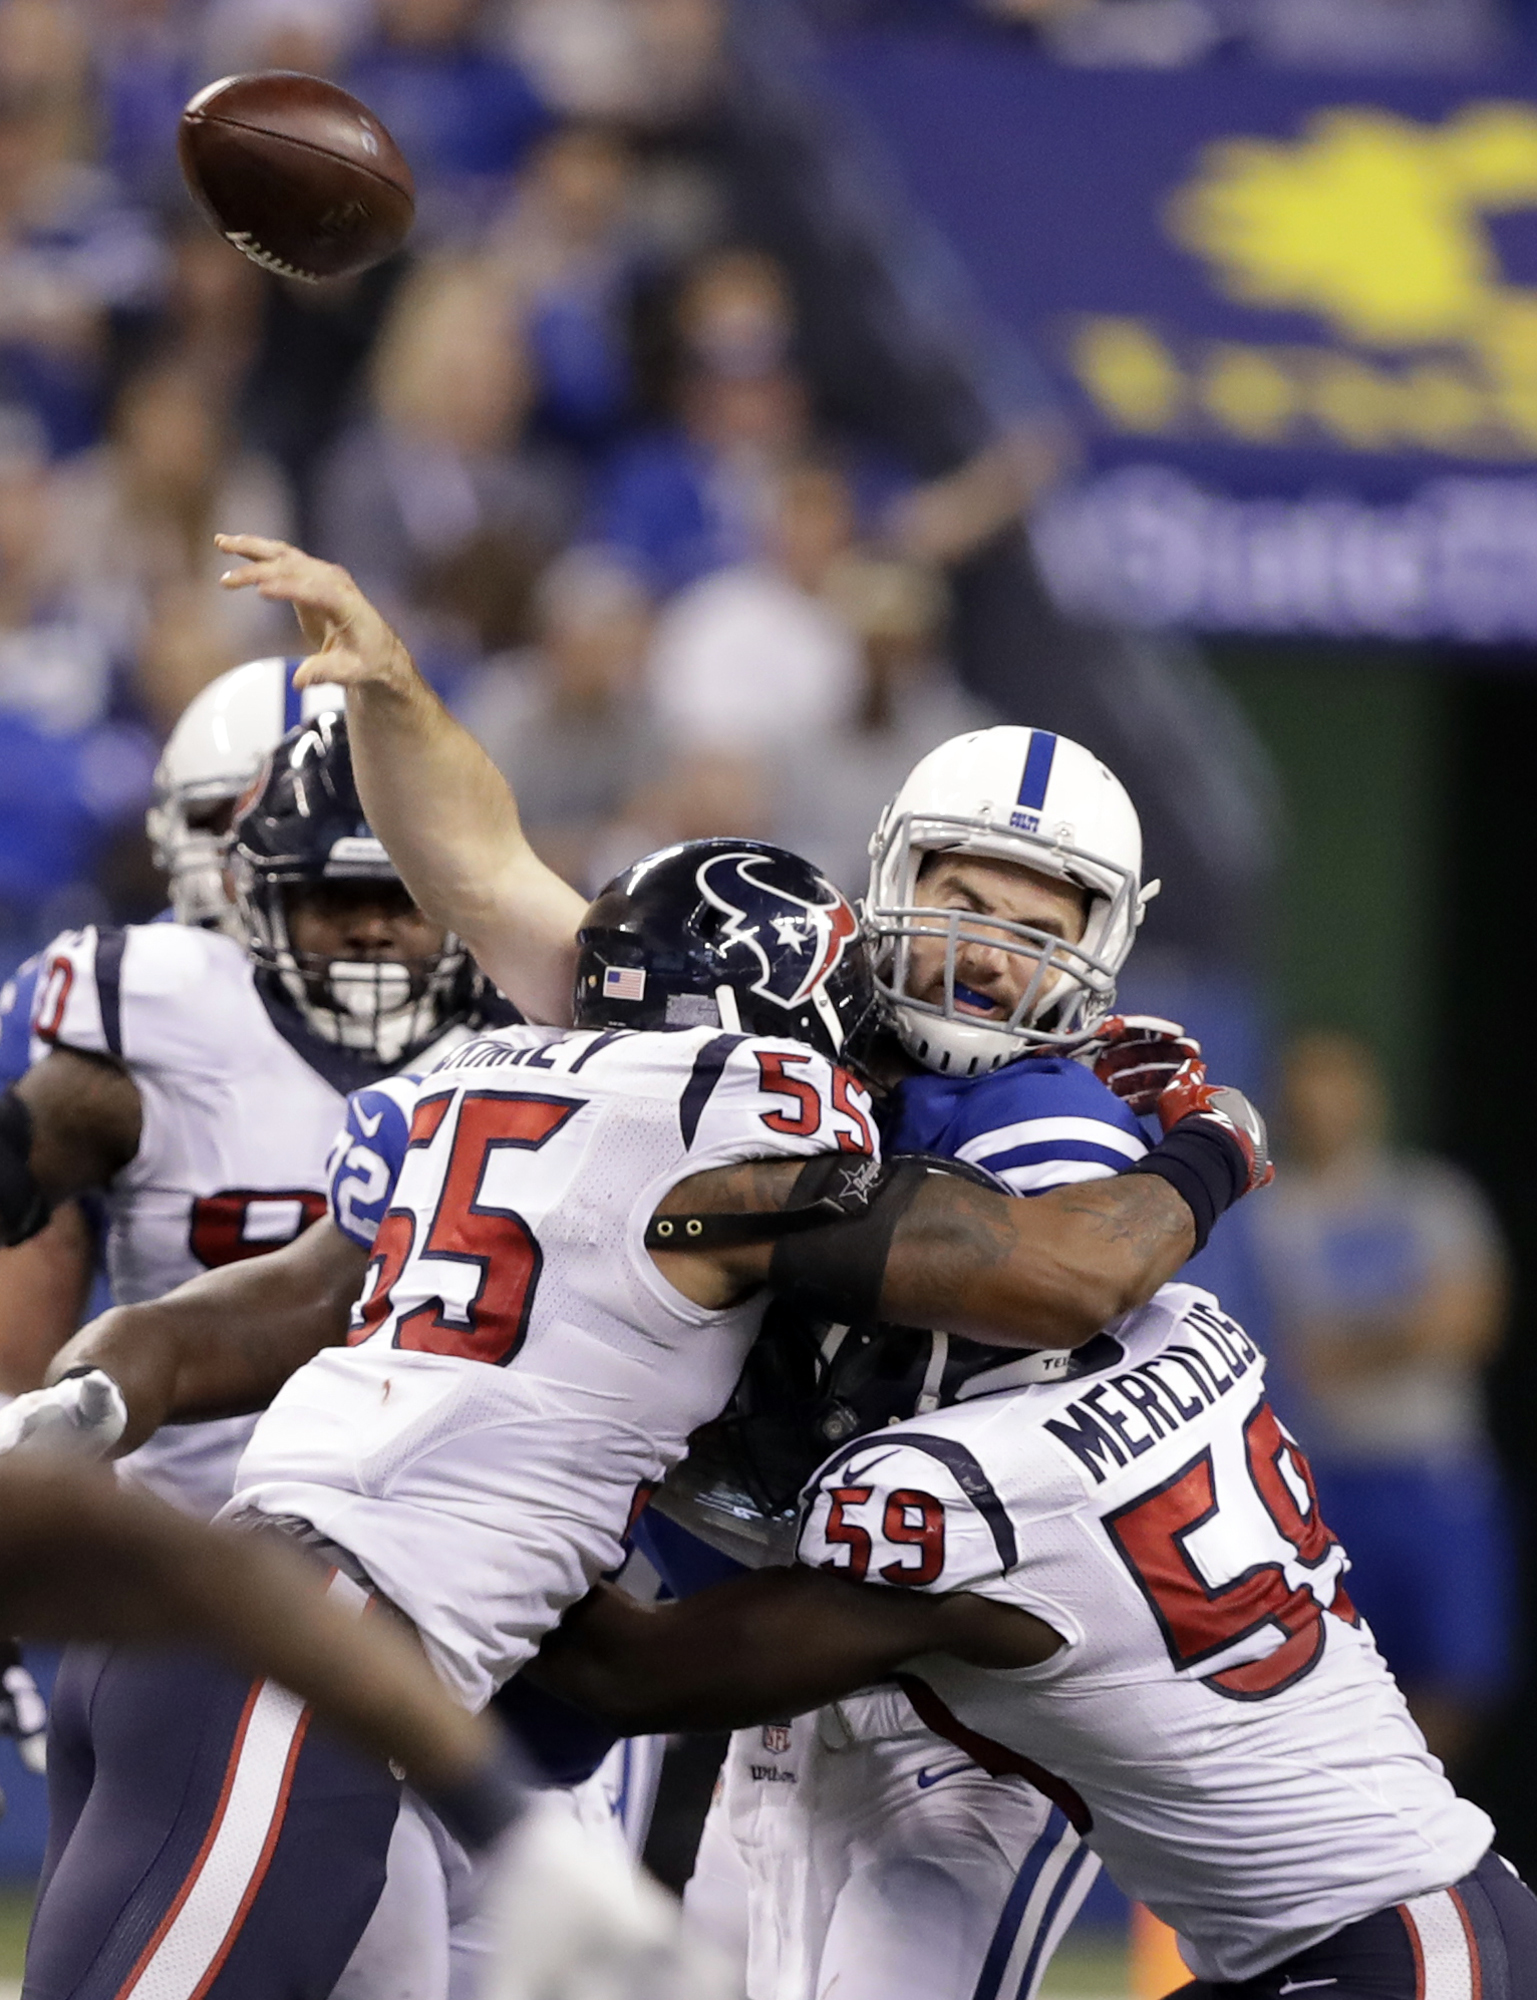 Indianapolis Colts quarterback Andrew Luck, center, is hit as he throws by Houston Texans linebacker Benardrick McKinney (55) and linebacker Whitney Mercilus (59) during the second half of an NFL football game, Sunday, Dec. 11, 2016, in Indianapolis. (AP